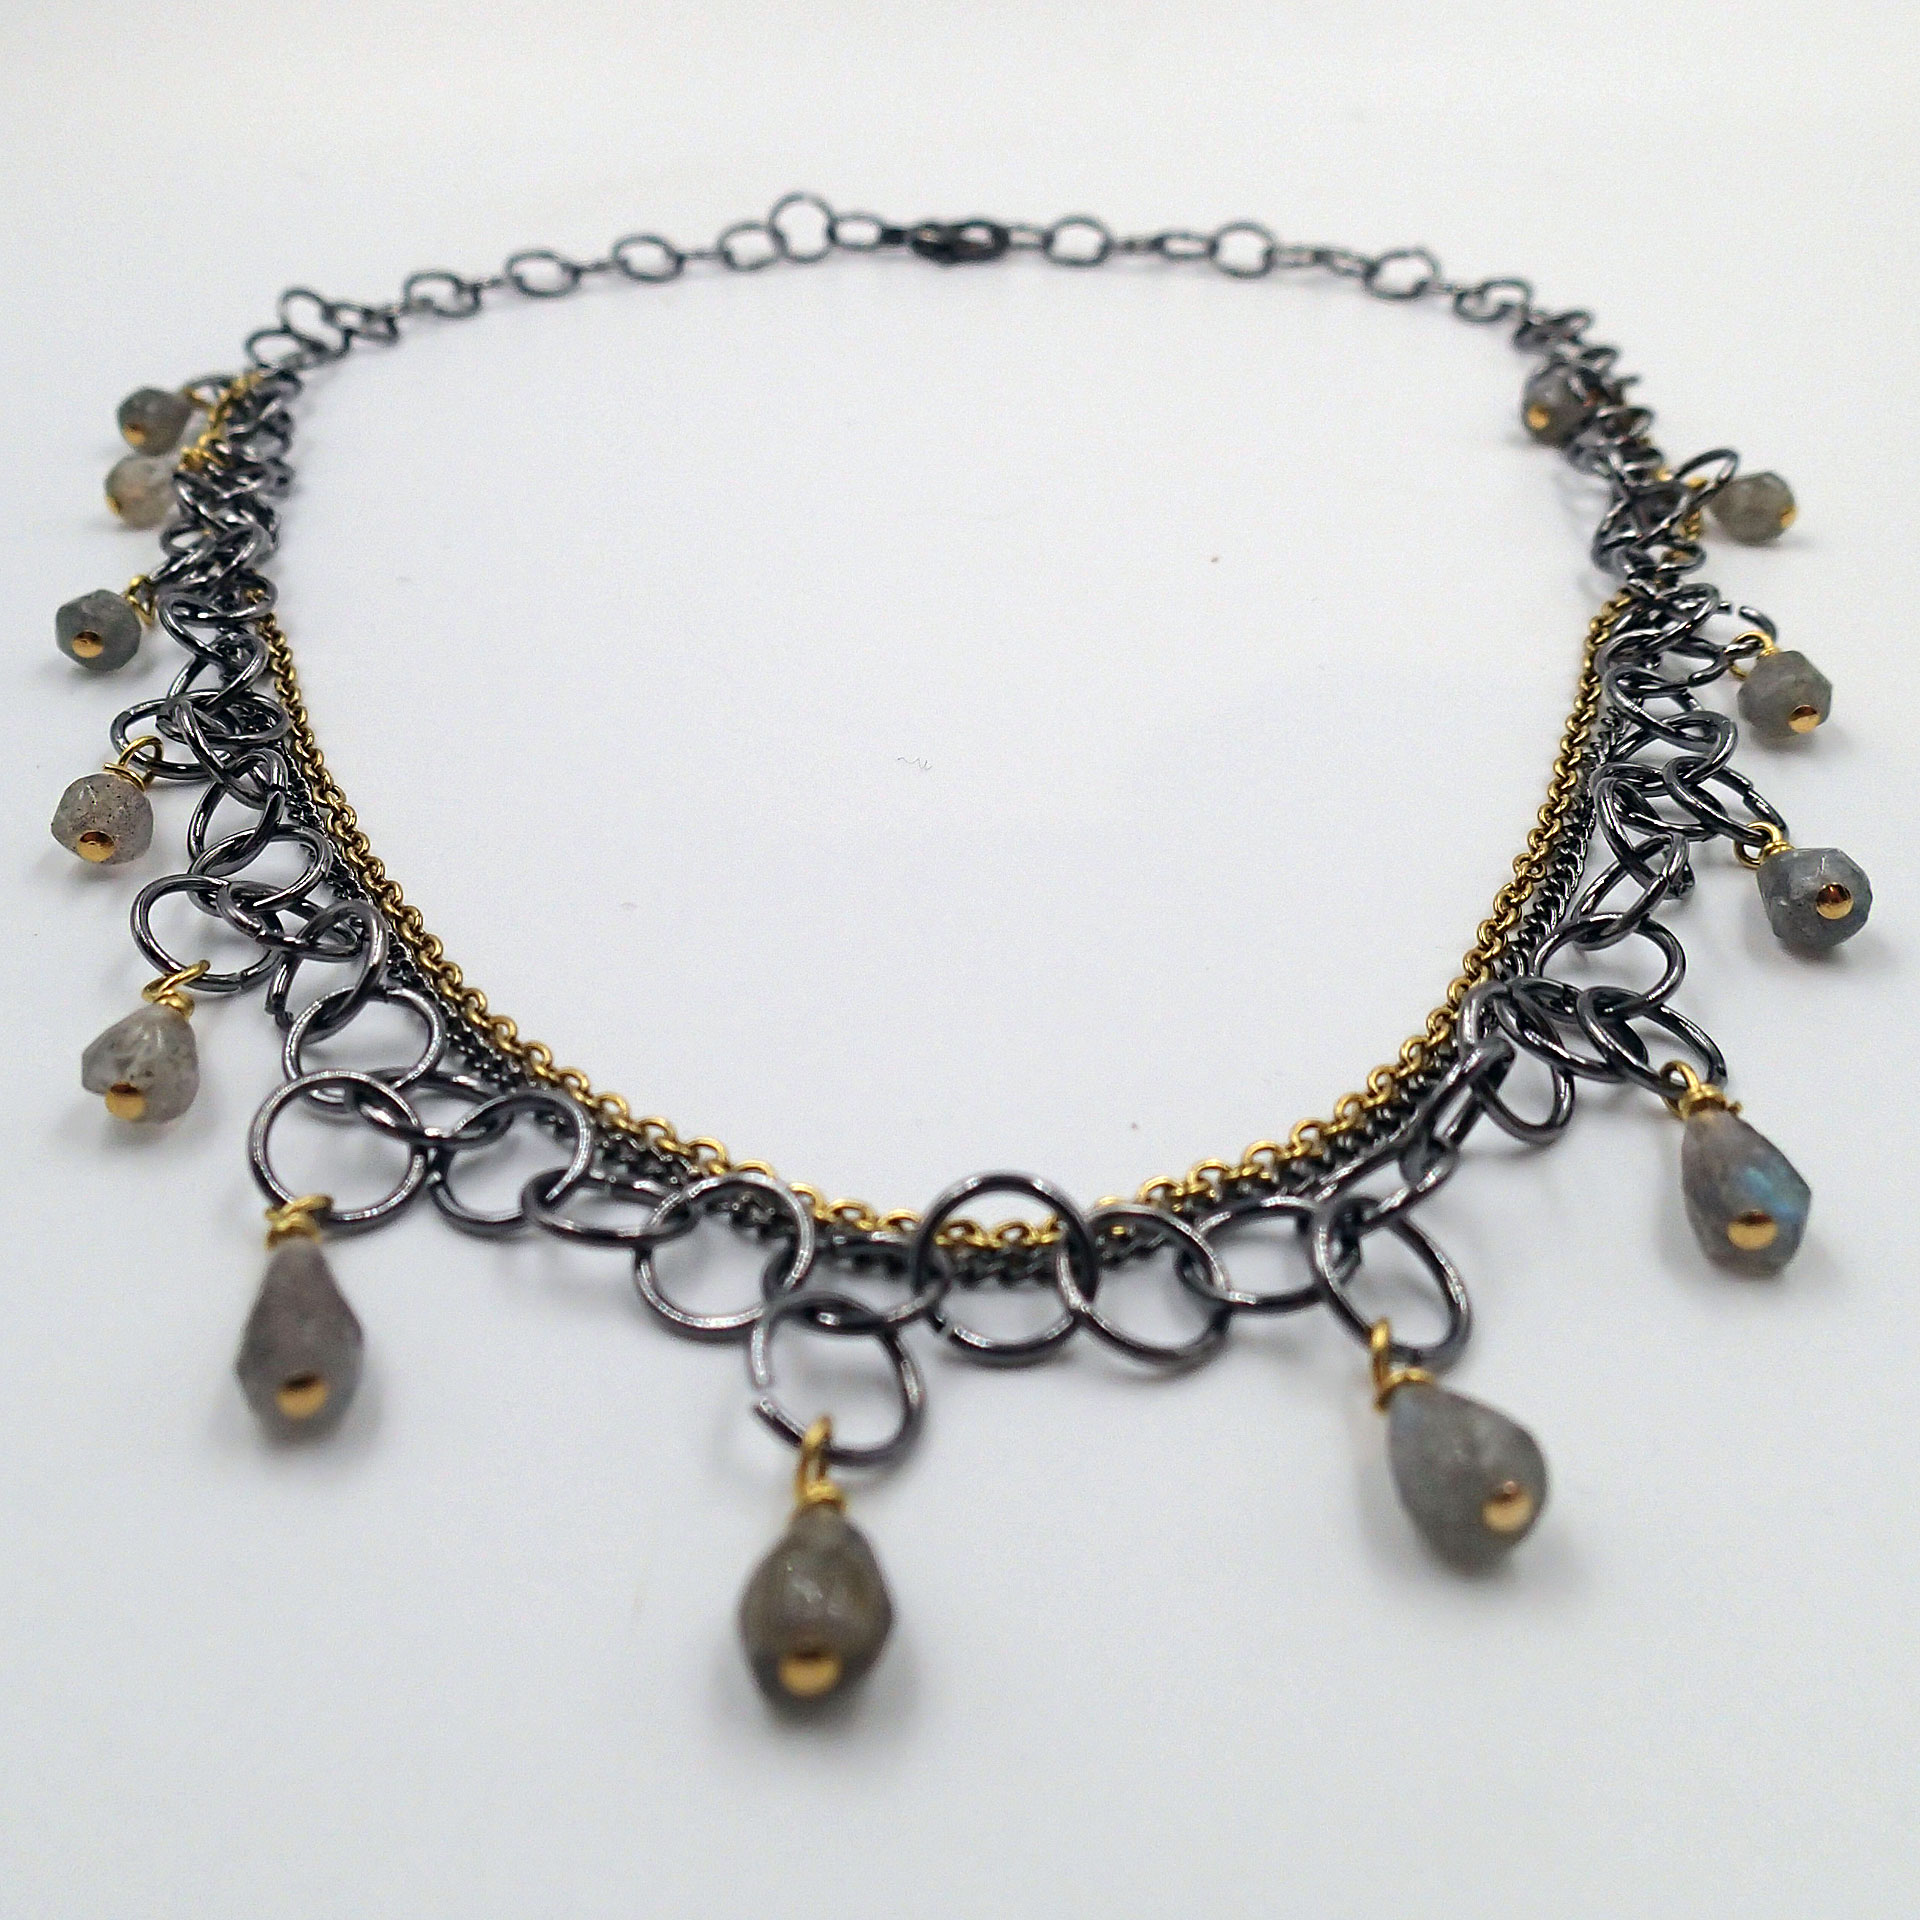 Hoopla Necklace, labradorite beadsm handmade chain, 18in L. Can be worn as choker